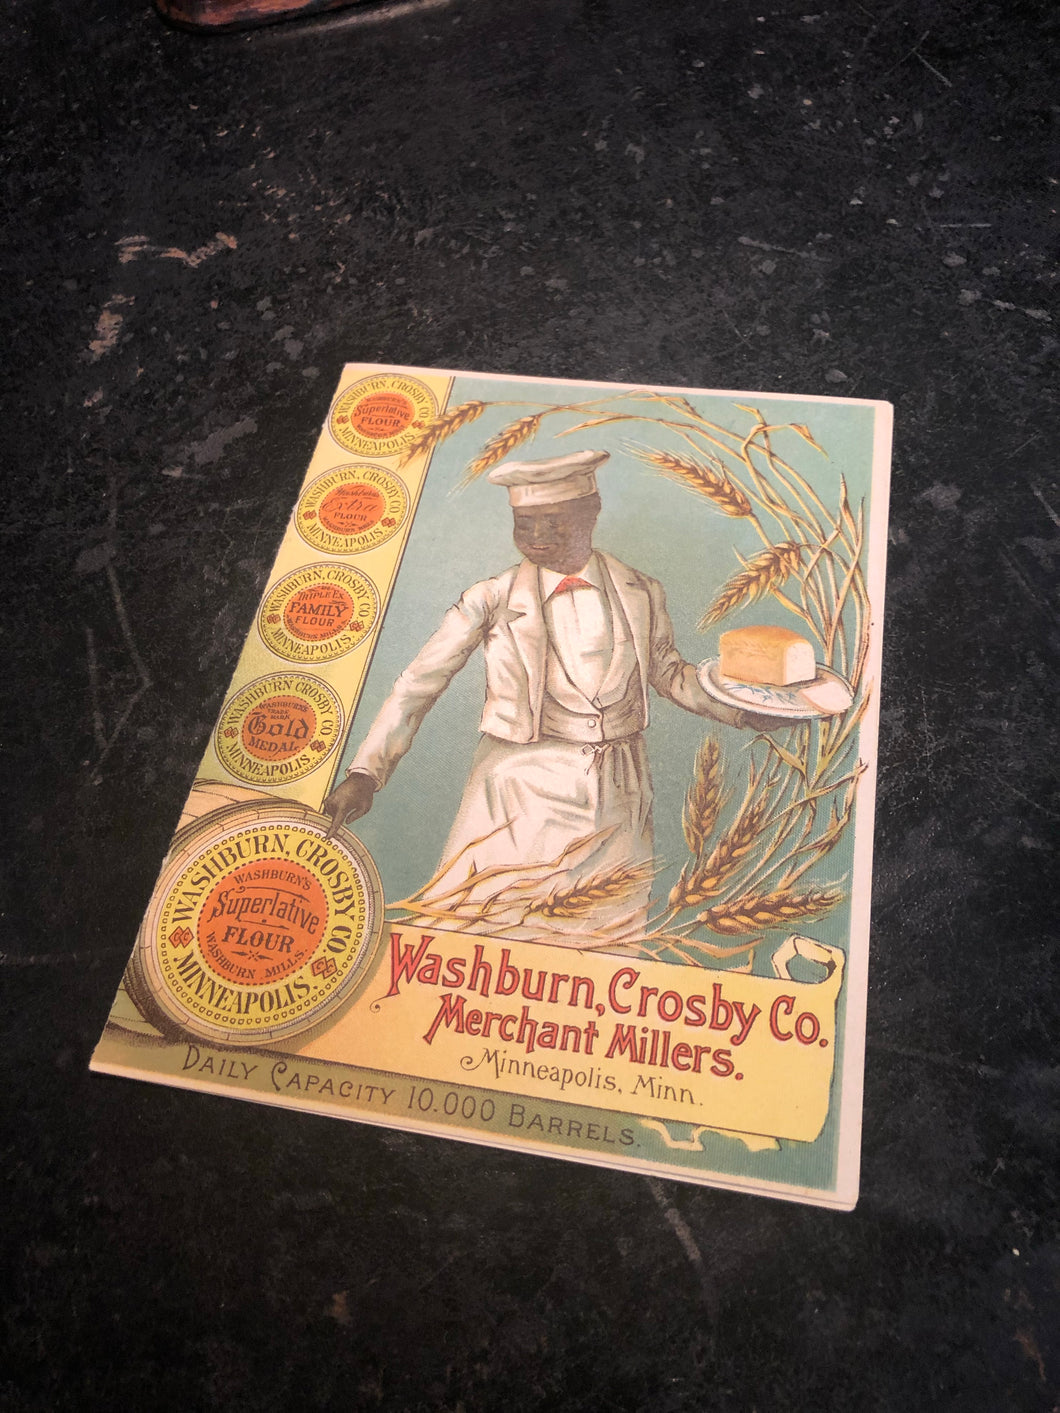 Vintage Washburn, Crosby Co. Flour Pamphlet, Amazing Condition